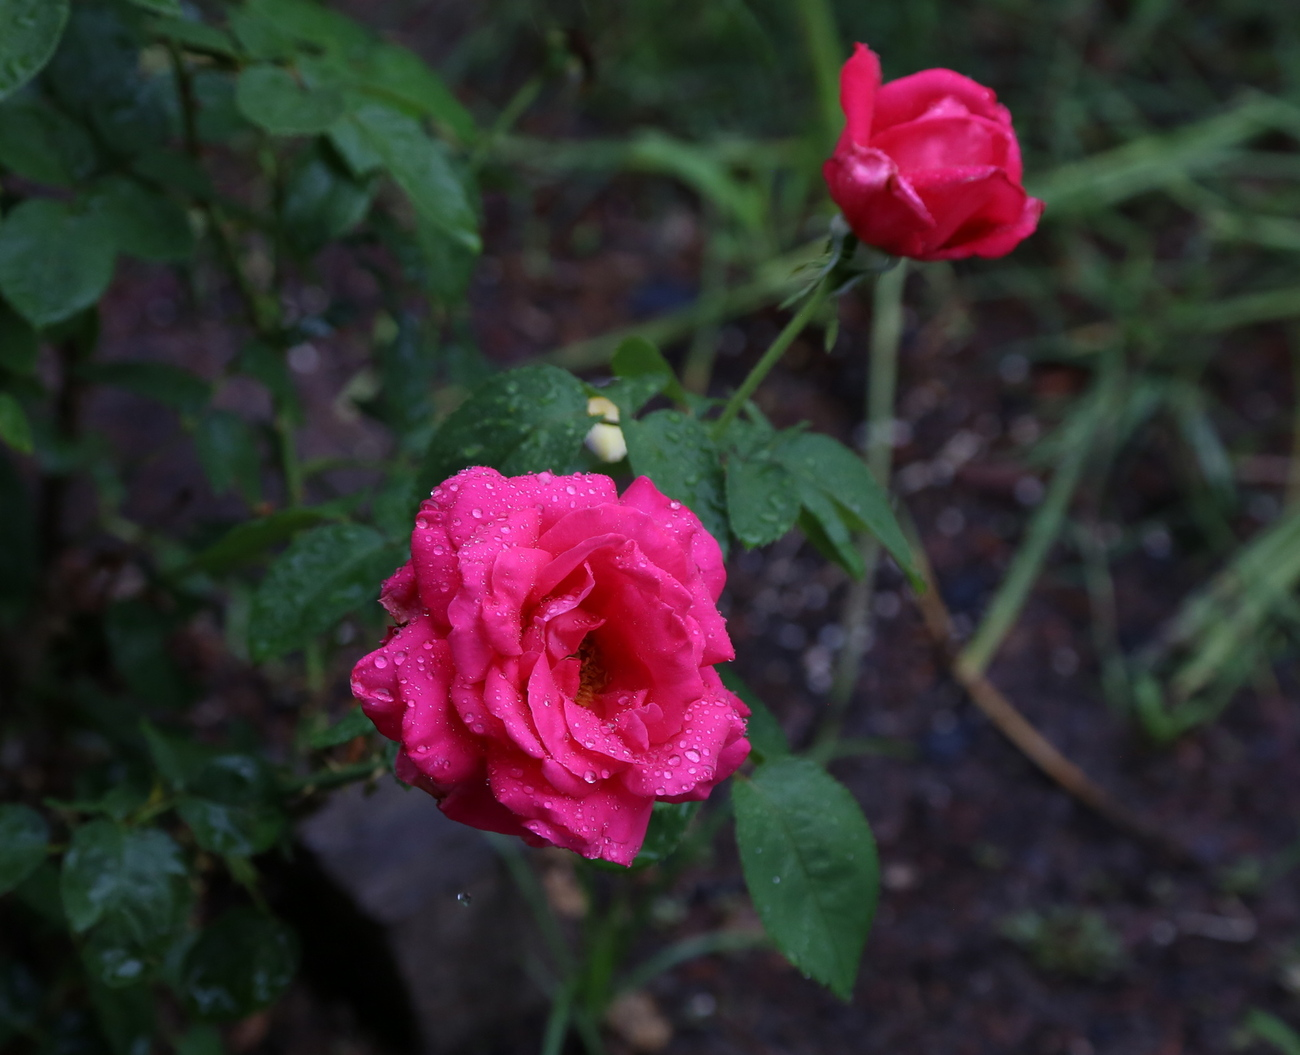 more wet roses by Richardphotos